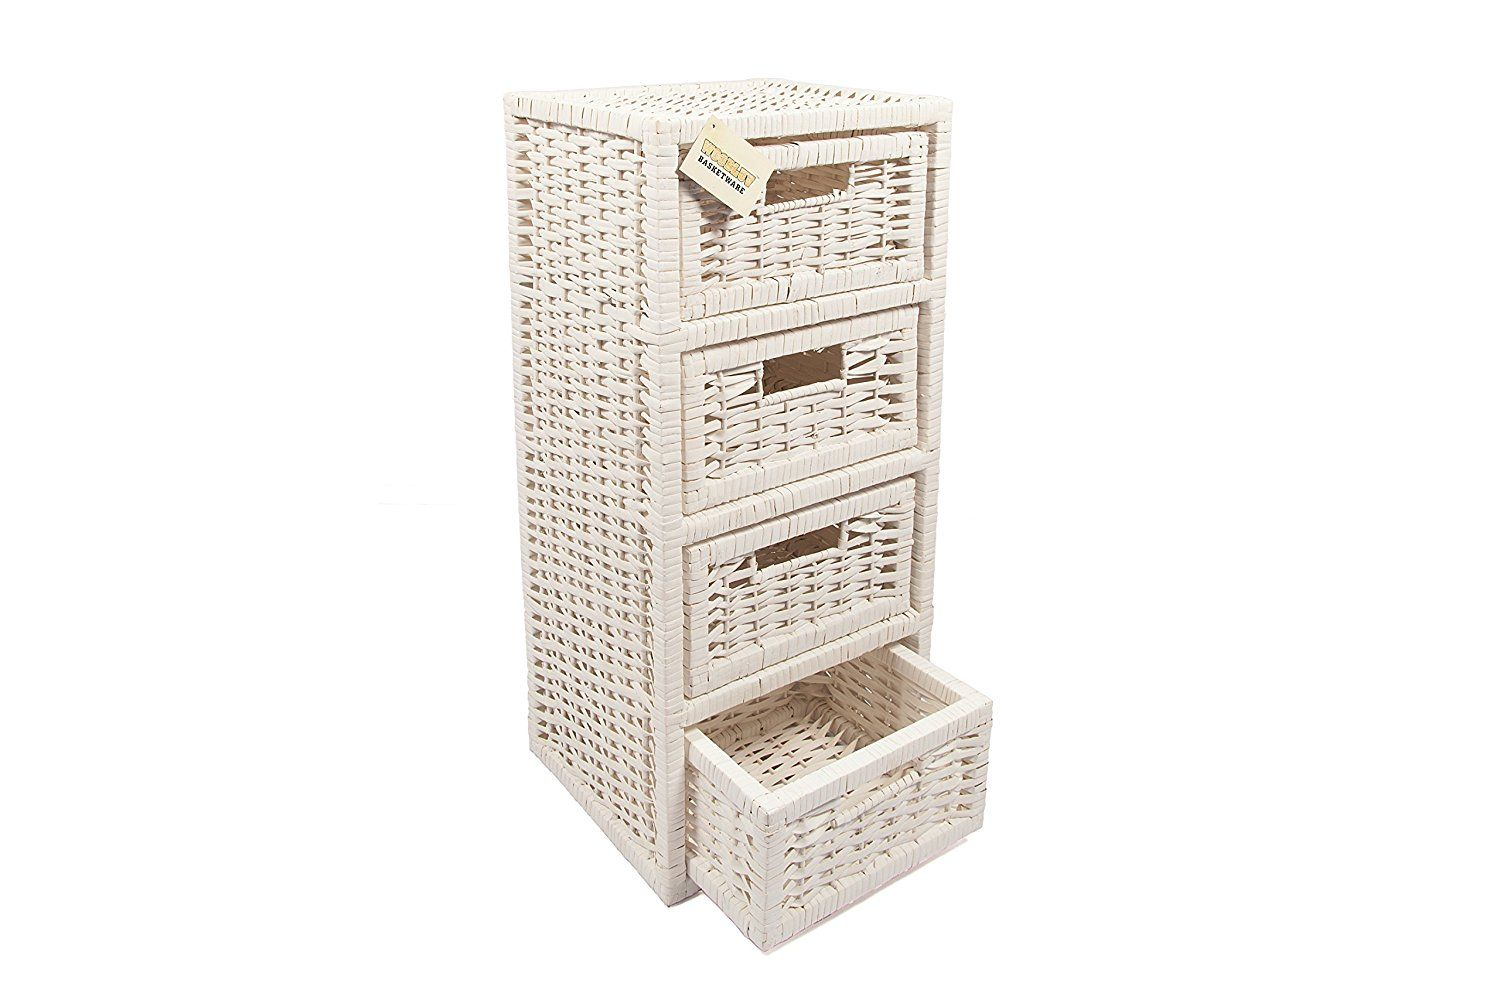 Woodluv 4 Drawer Wicker Storage Tower Unit For Bathroom Bedroom White Amazon Co Uk Kitchen Home Bathroom Storage Tower Storage Towers Storage